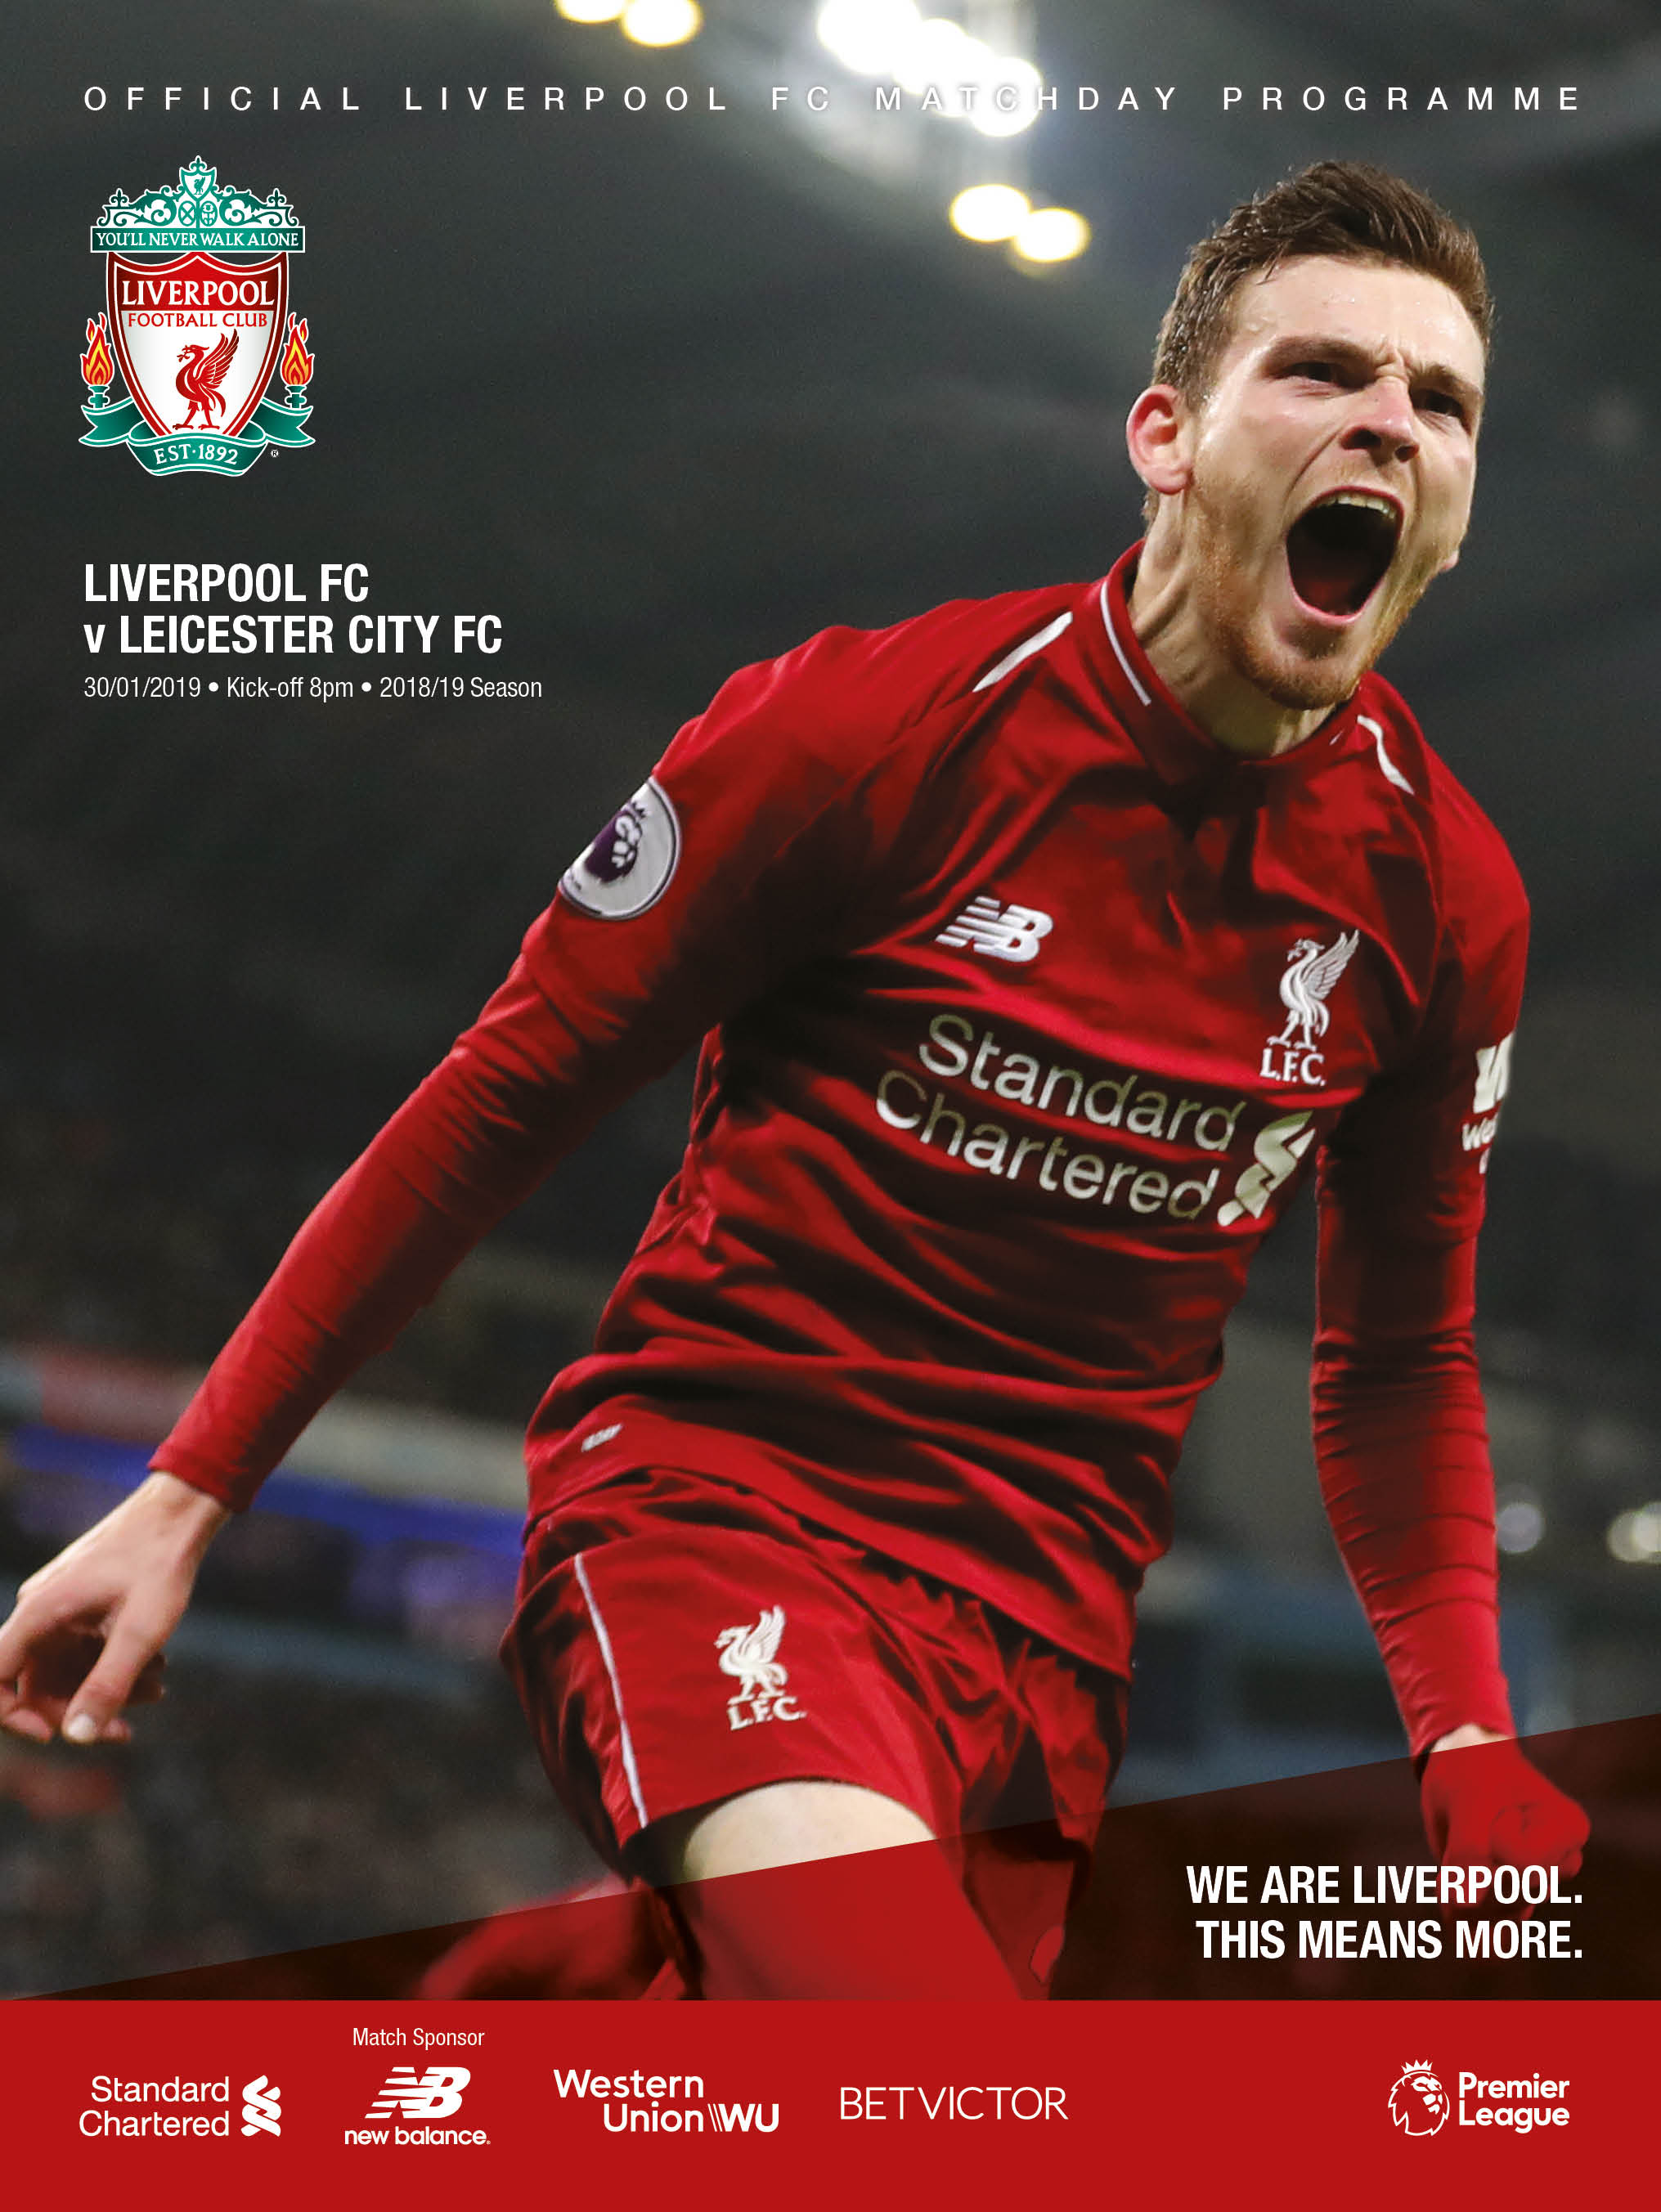 1a9b9bb78 Andy Robertson is the star of the matchday programme cover for this game -  pick up your copy at Anfield or subscribe online by clicking here.